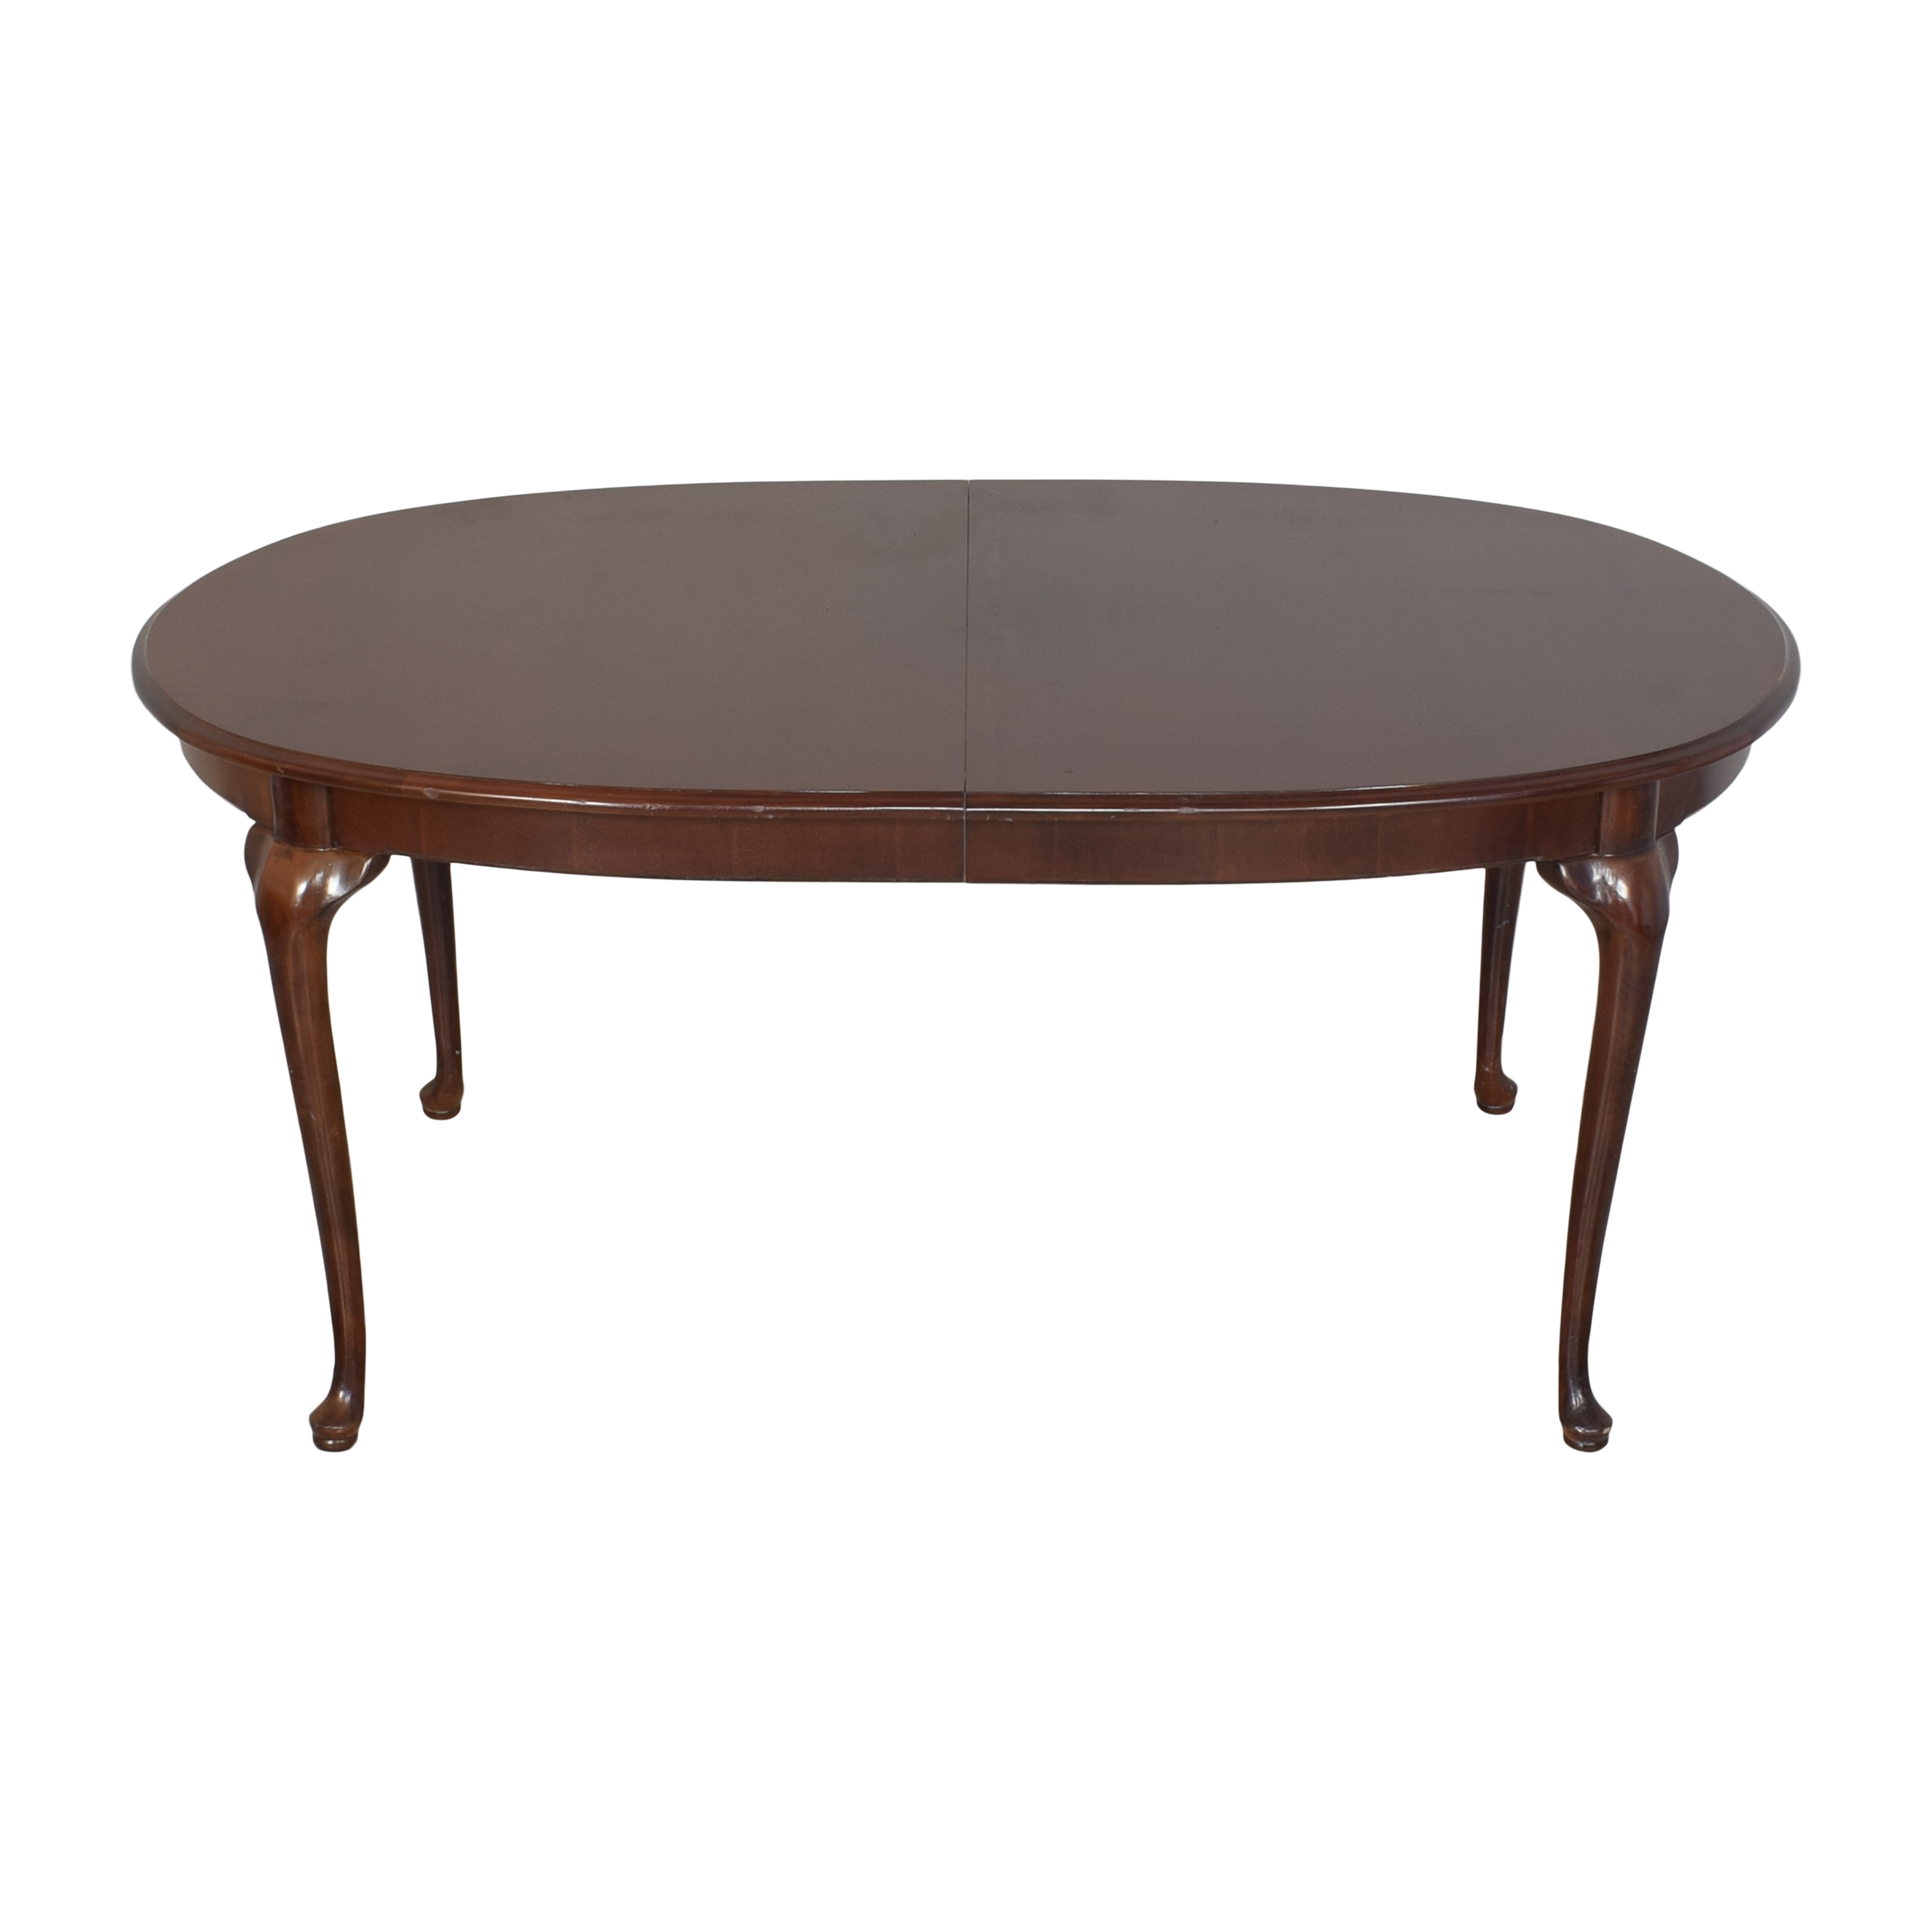 Thomasville Thomasville Oval Extendable Dining Table used